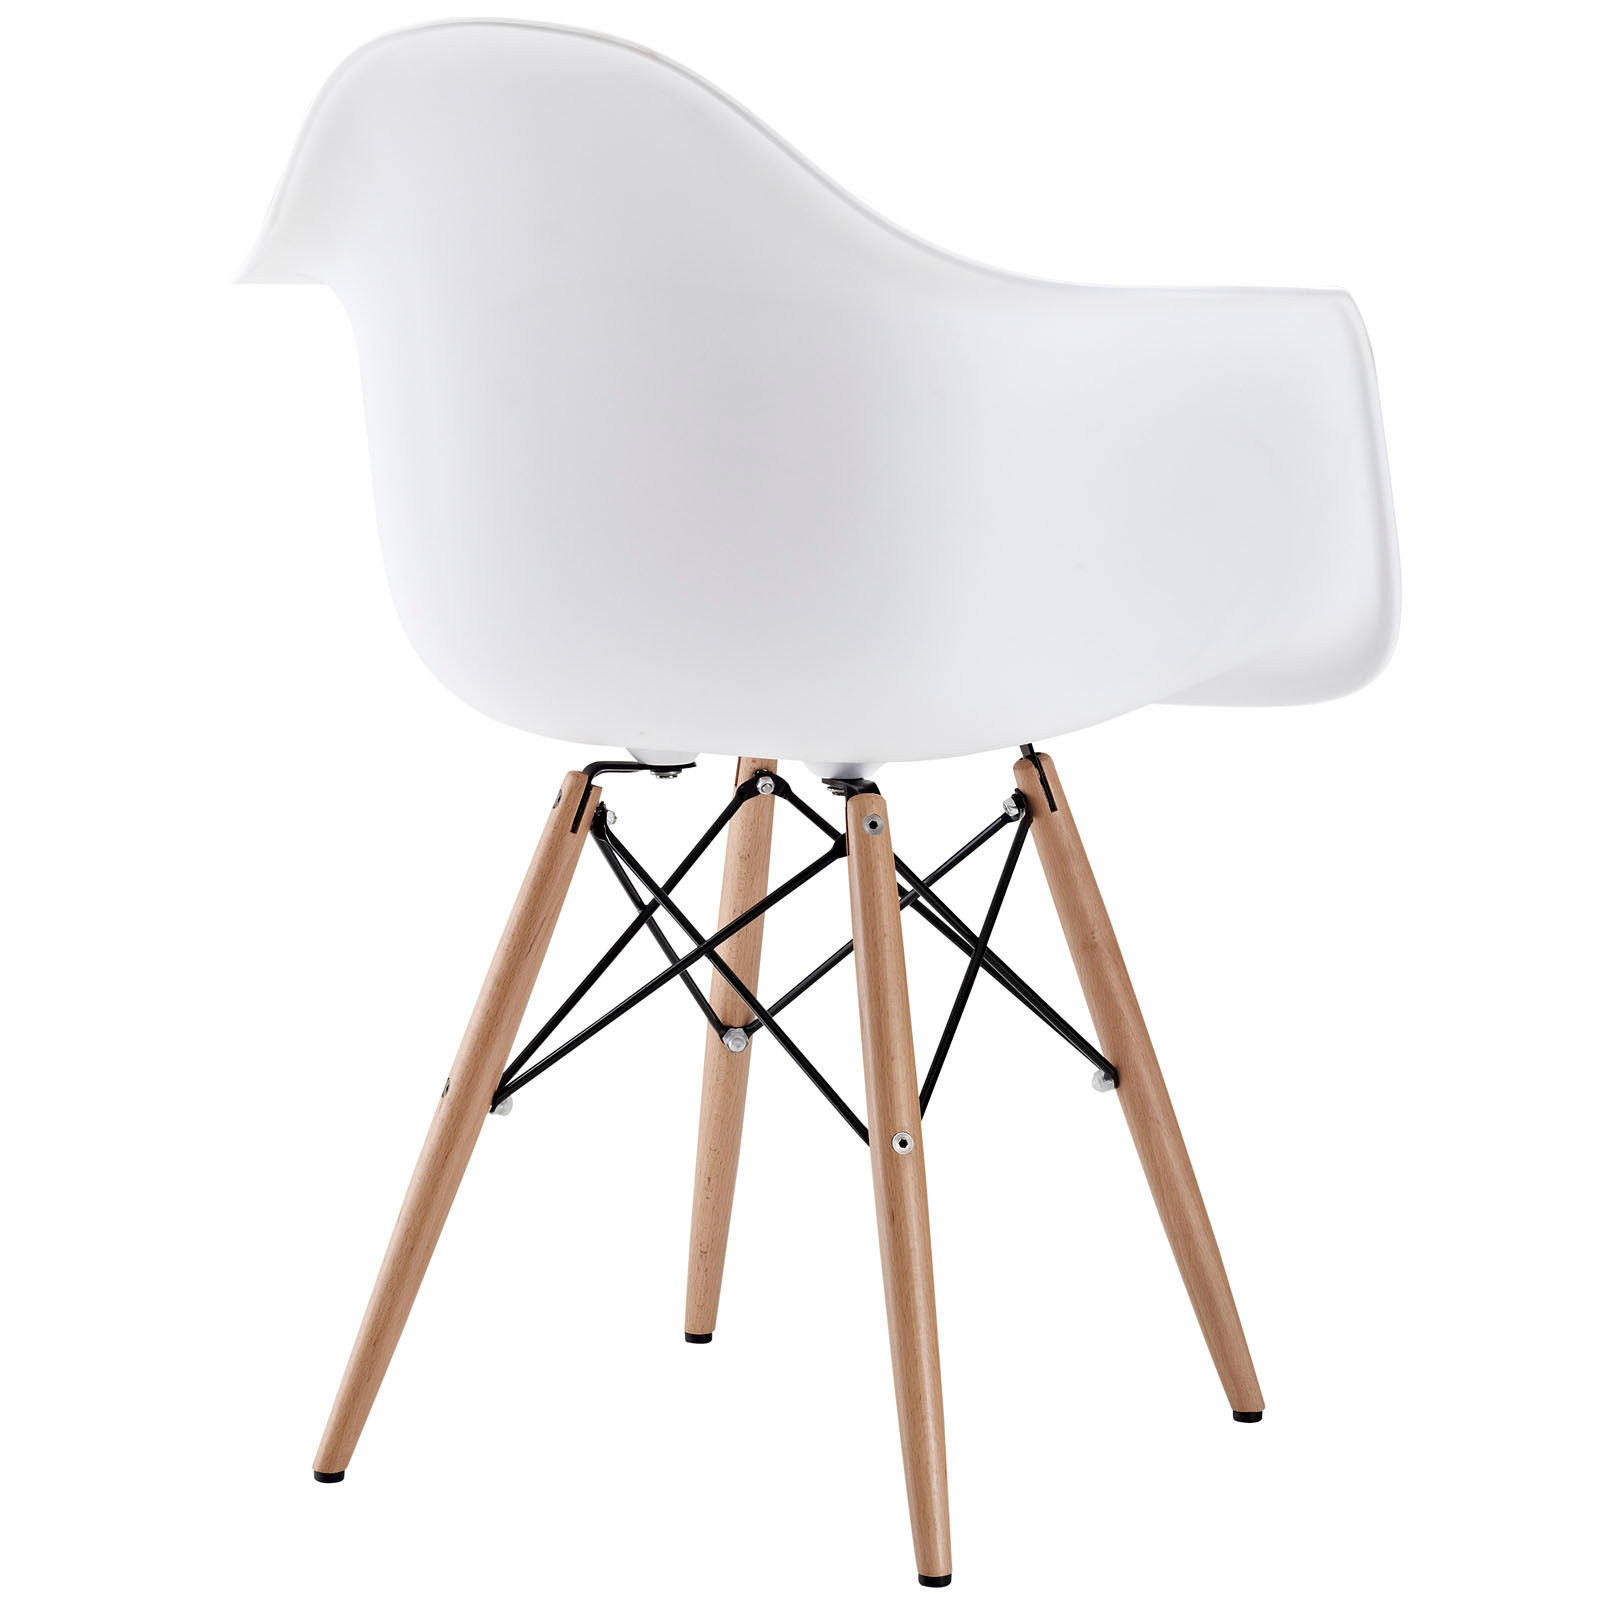 Superb img of  Eames DAW Style White Arm Chair Accent Dining Wood Eiffel Other with #875F44 color and 1600x1600 pixels